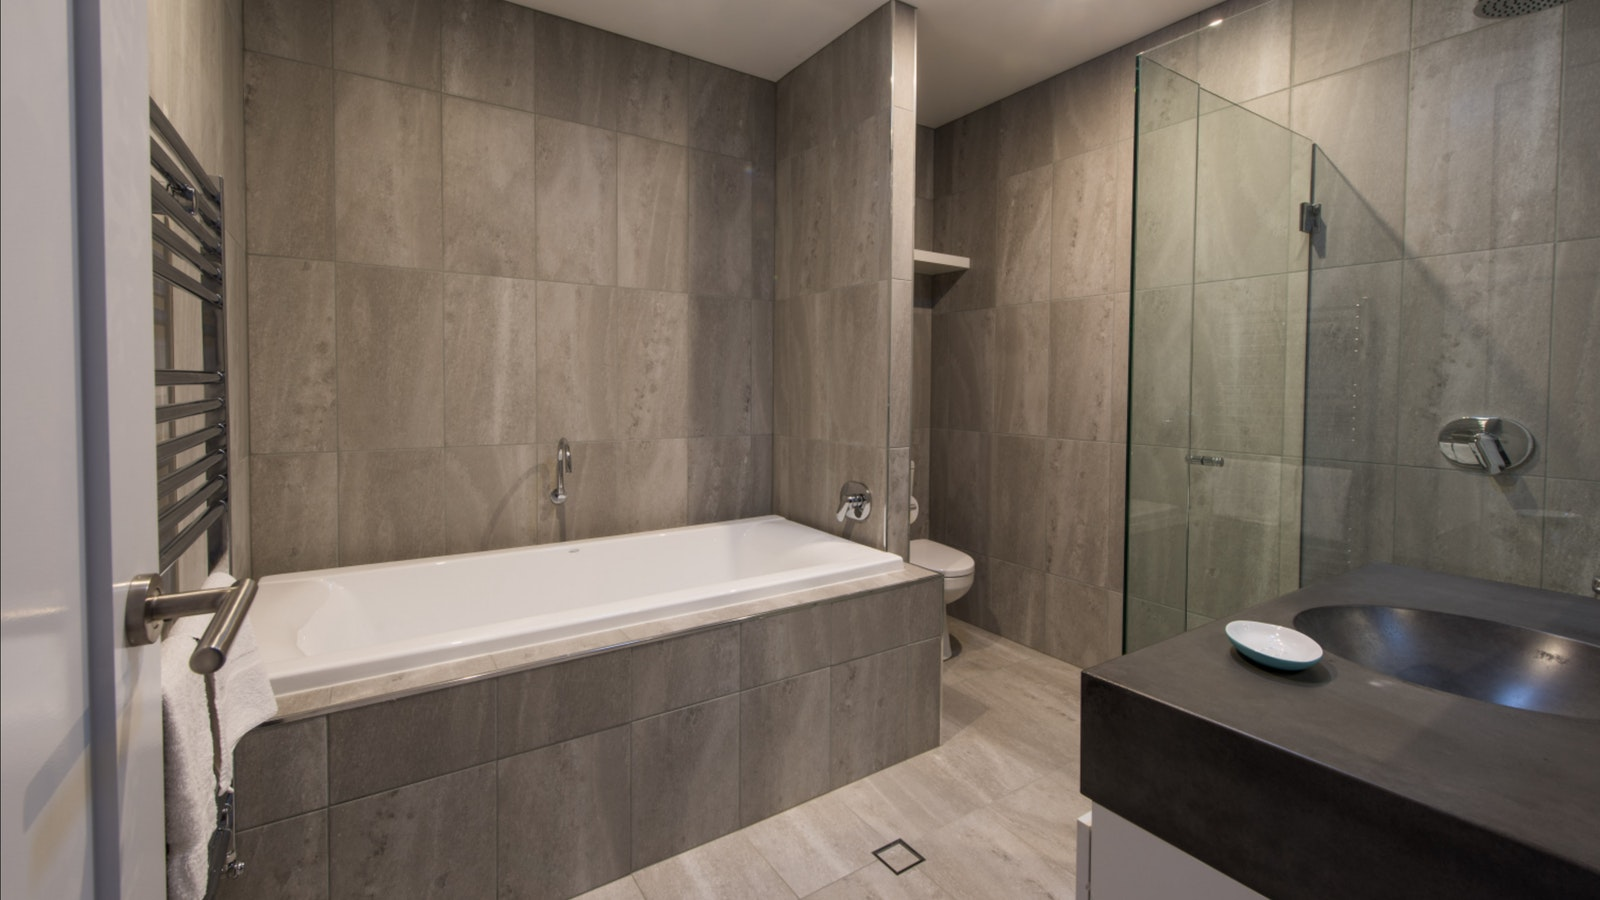 Main bathroom, grey tiled wet room with shower, deep bath, vanity and toilet.